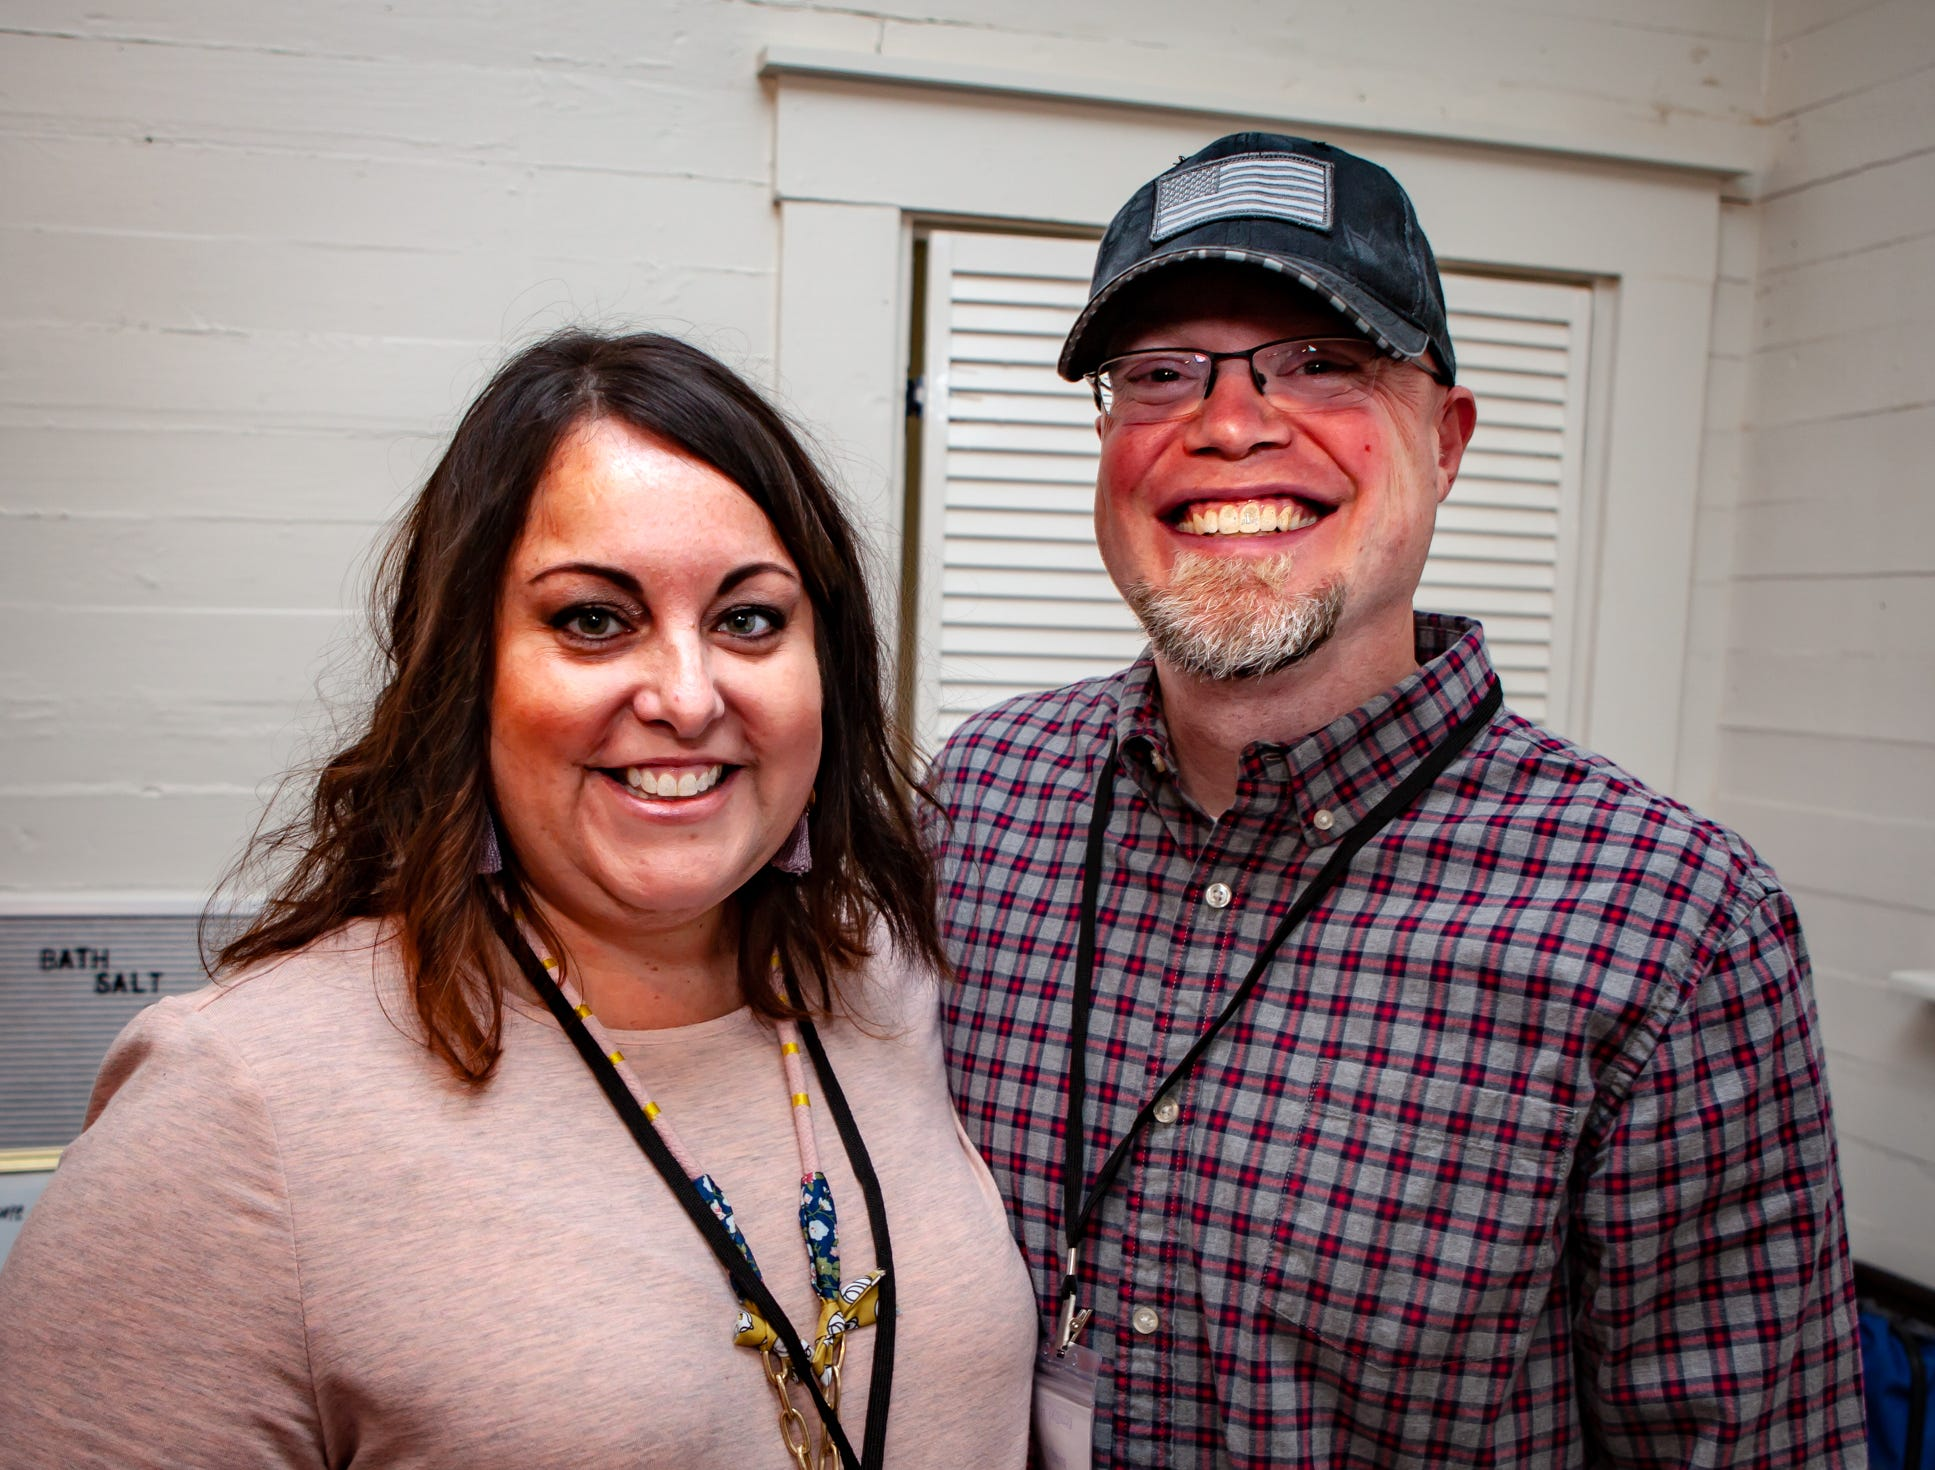 Daniel and Erin Jones at The Gathering at Milton's fall market and craft fair on Saturday, Oct. 13, 2018.